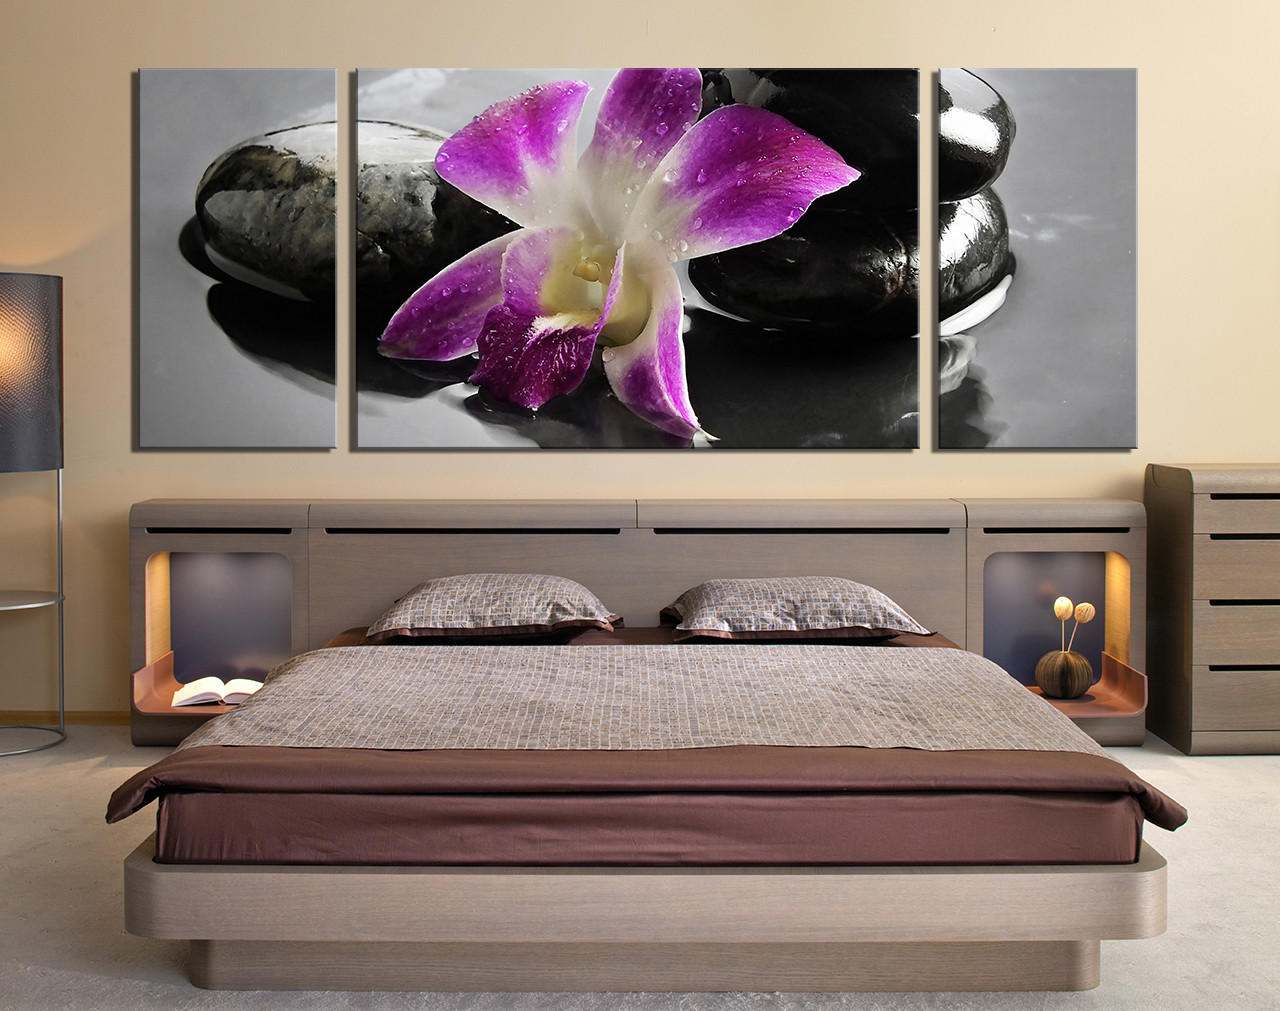 Bon 3 Piece Canvas Wall Art, Bedroom Wall Art, Orchid Wall Decor, Purple Huge